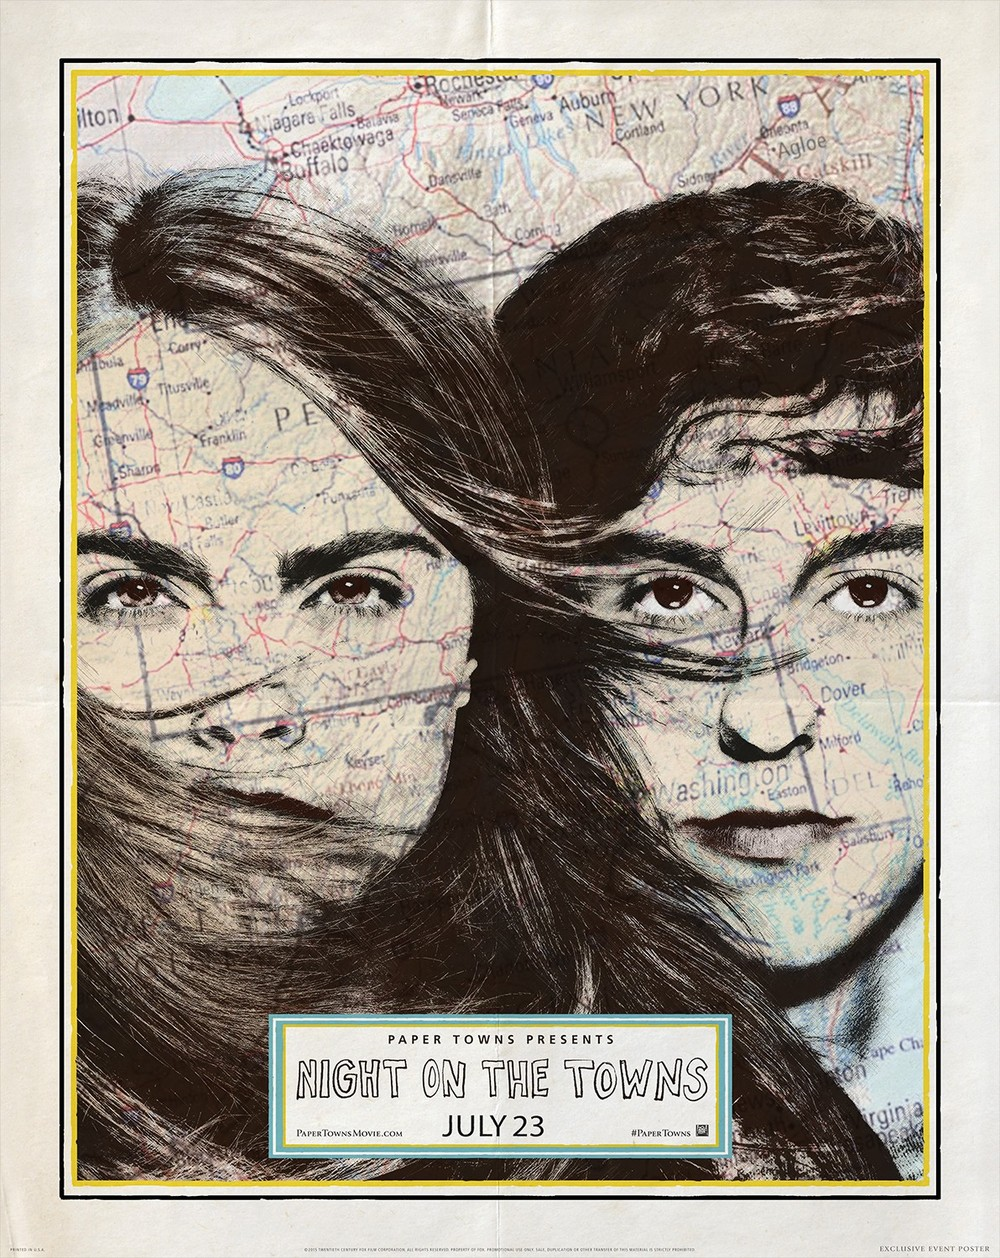 Paper Towns (2015) Movie Trailer, Release Date, Cast, Plot